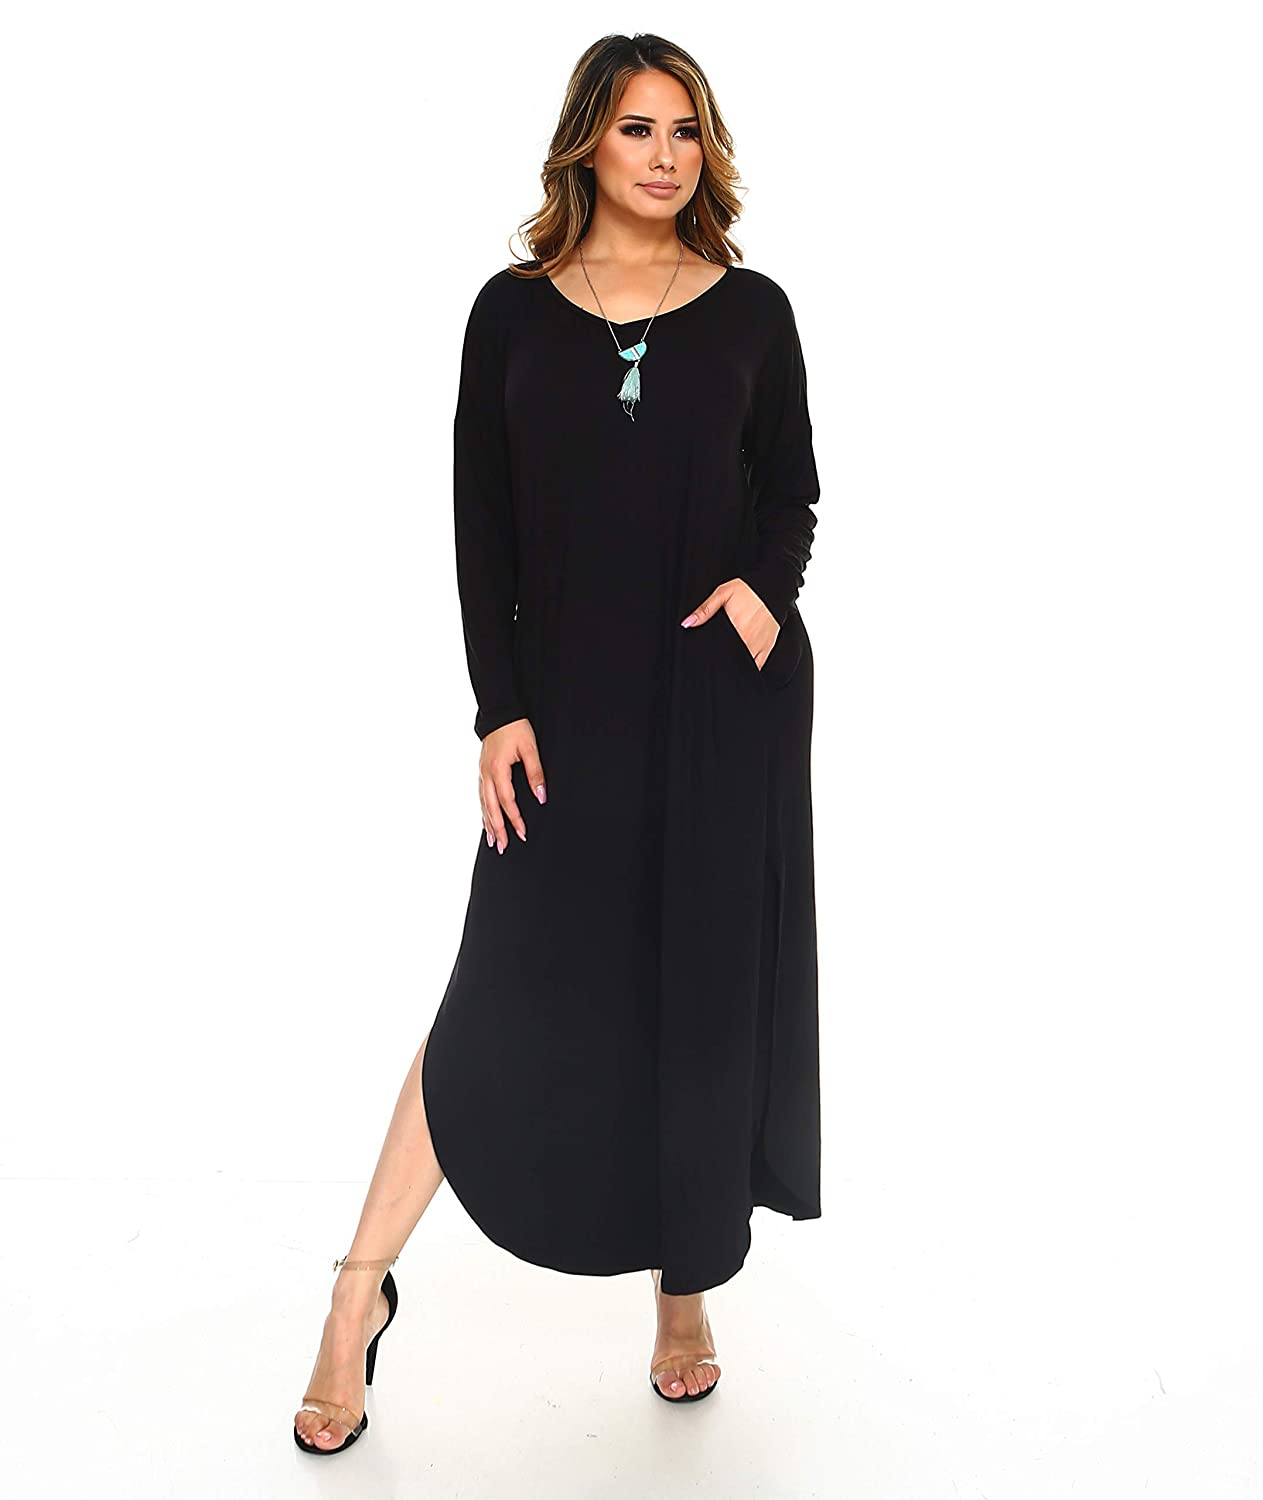 8ae1c94c6c Isaac Liev Women's Long Sleeve Tunic Dress with Pockets and Side Slits at Amazon  Women's Clothing store: